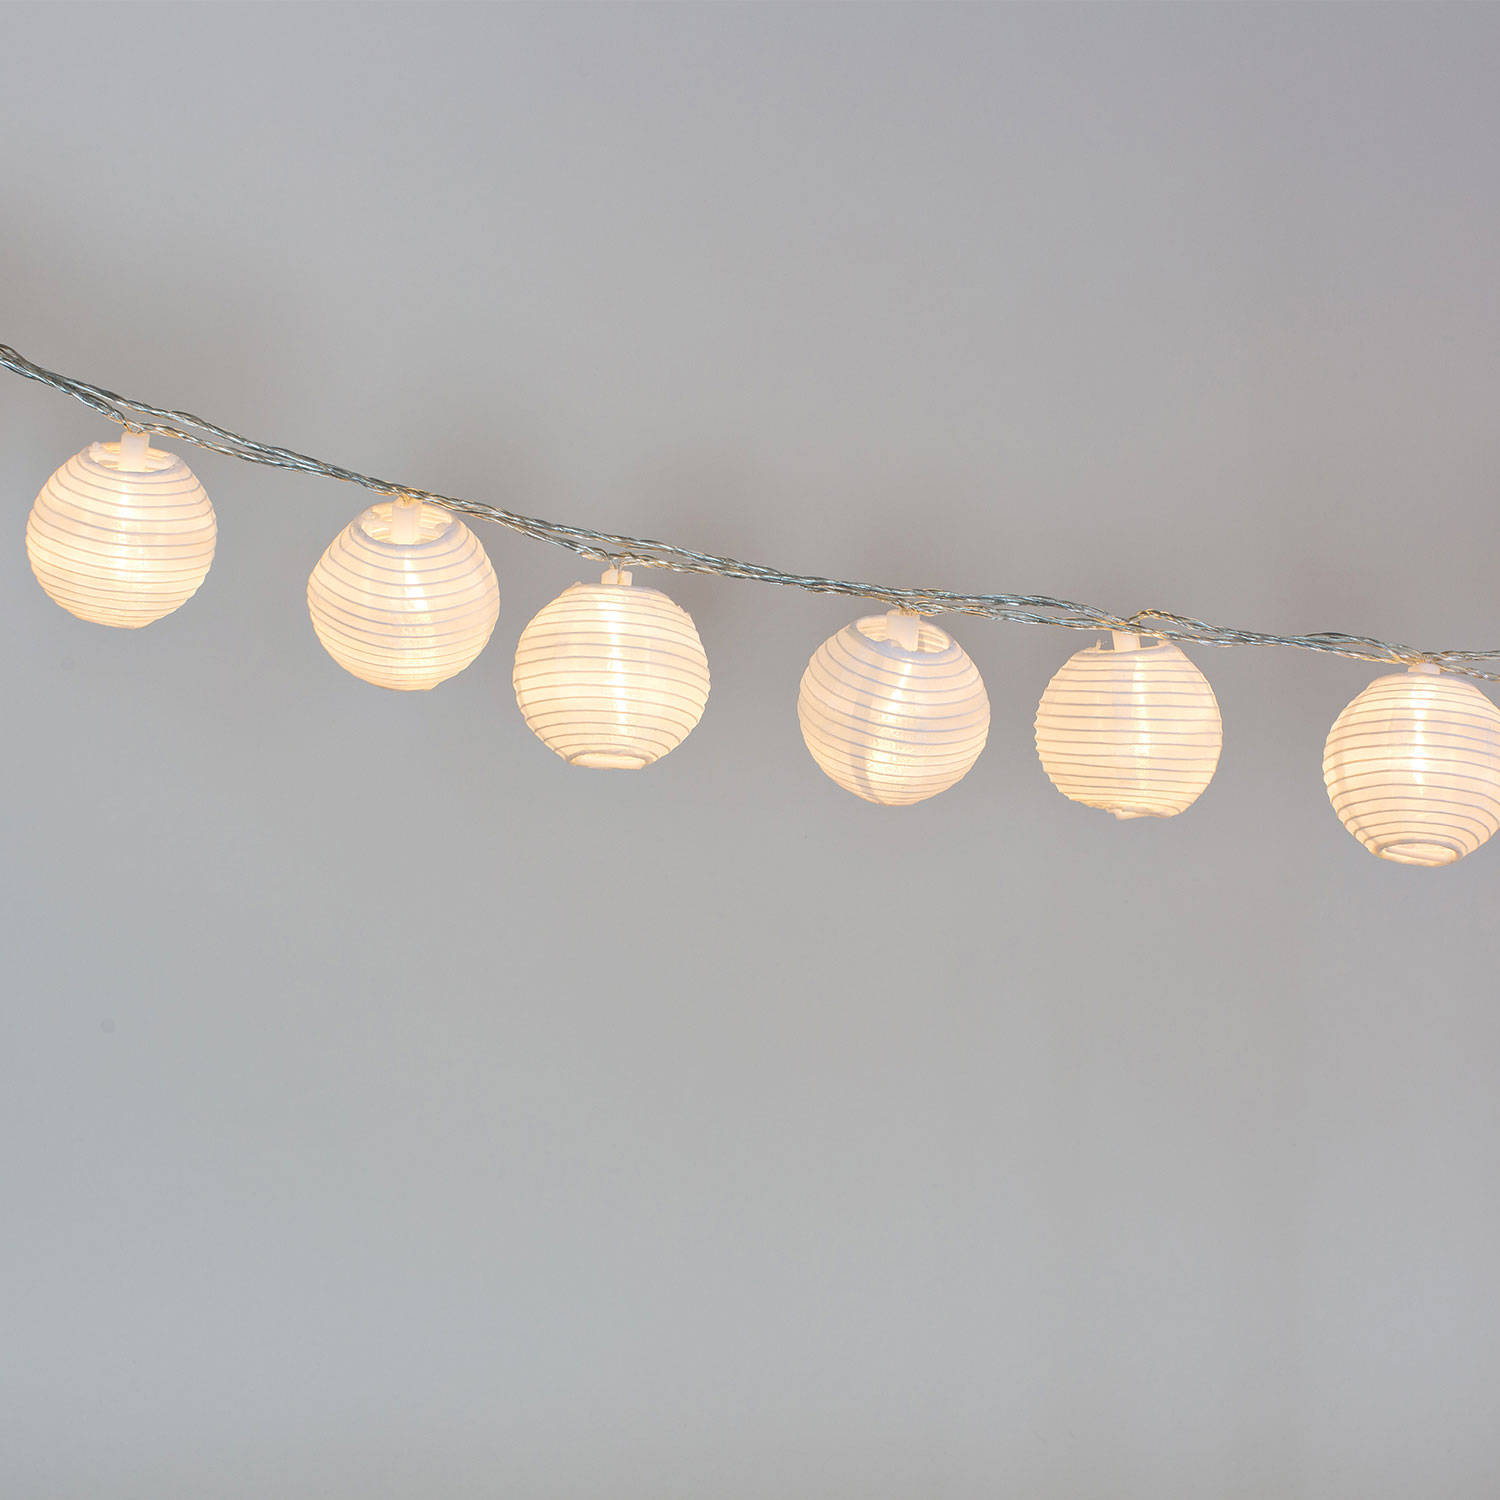 Decorative String Lights Home String Lights Decorative String Lights